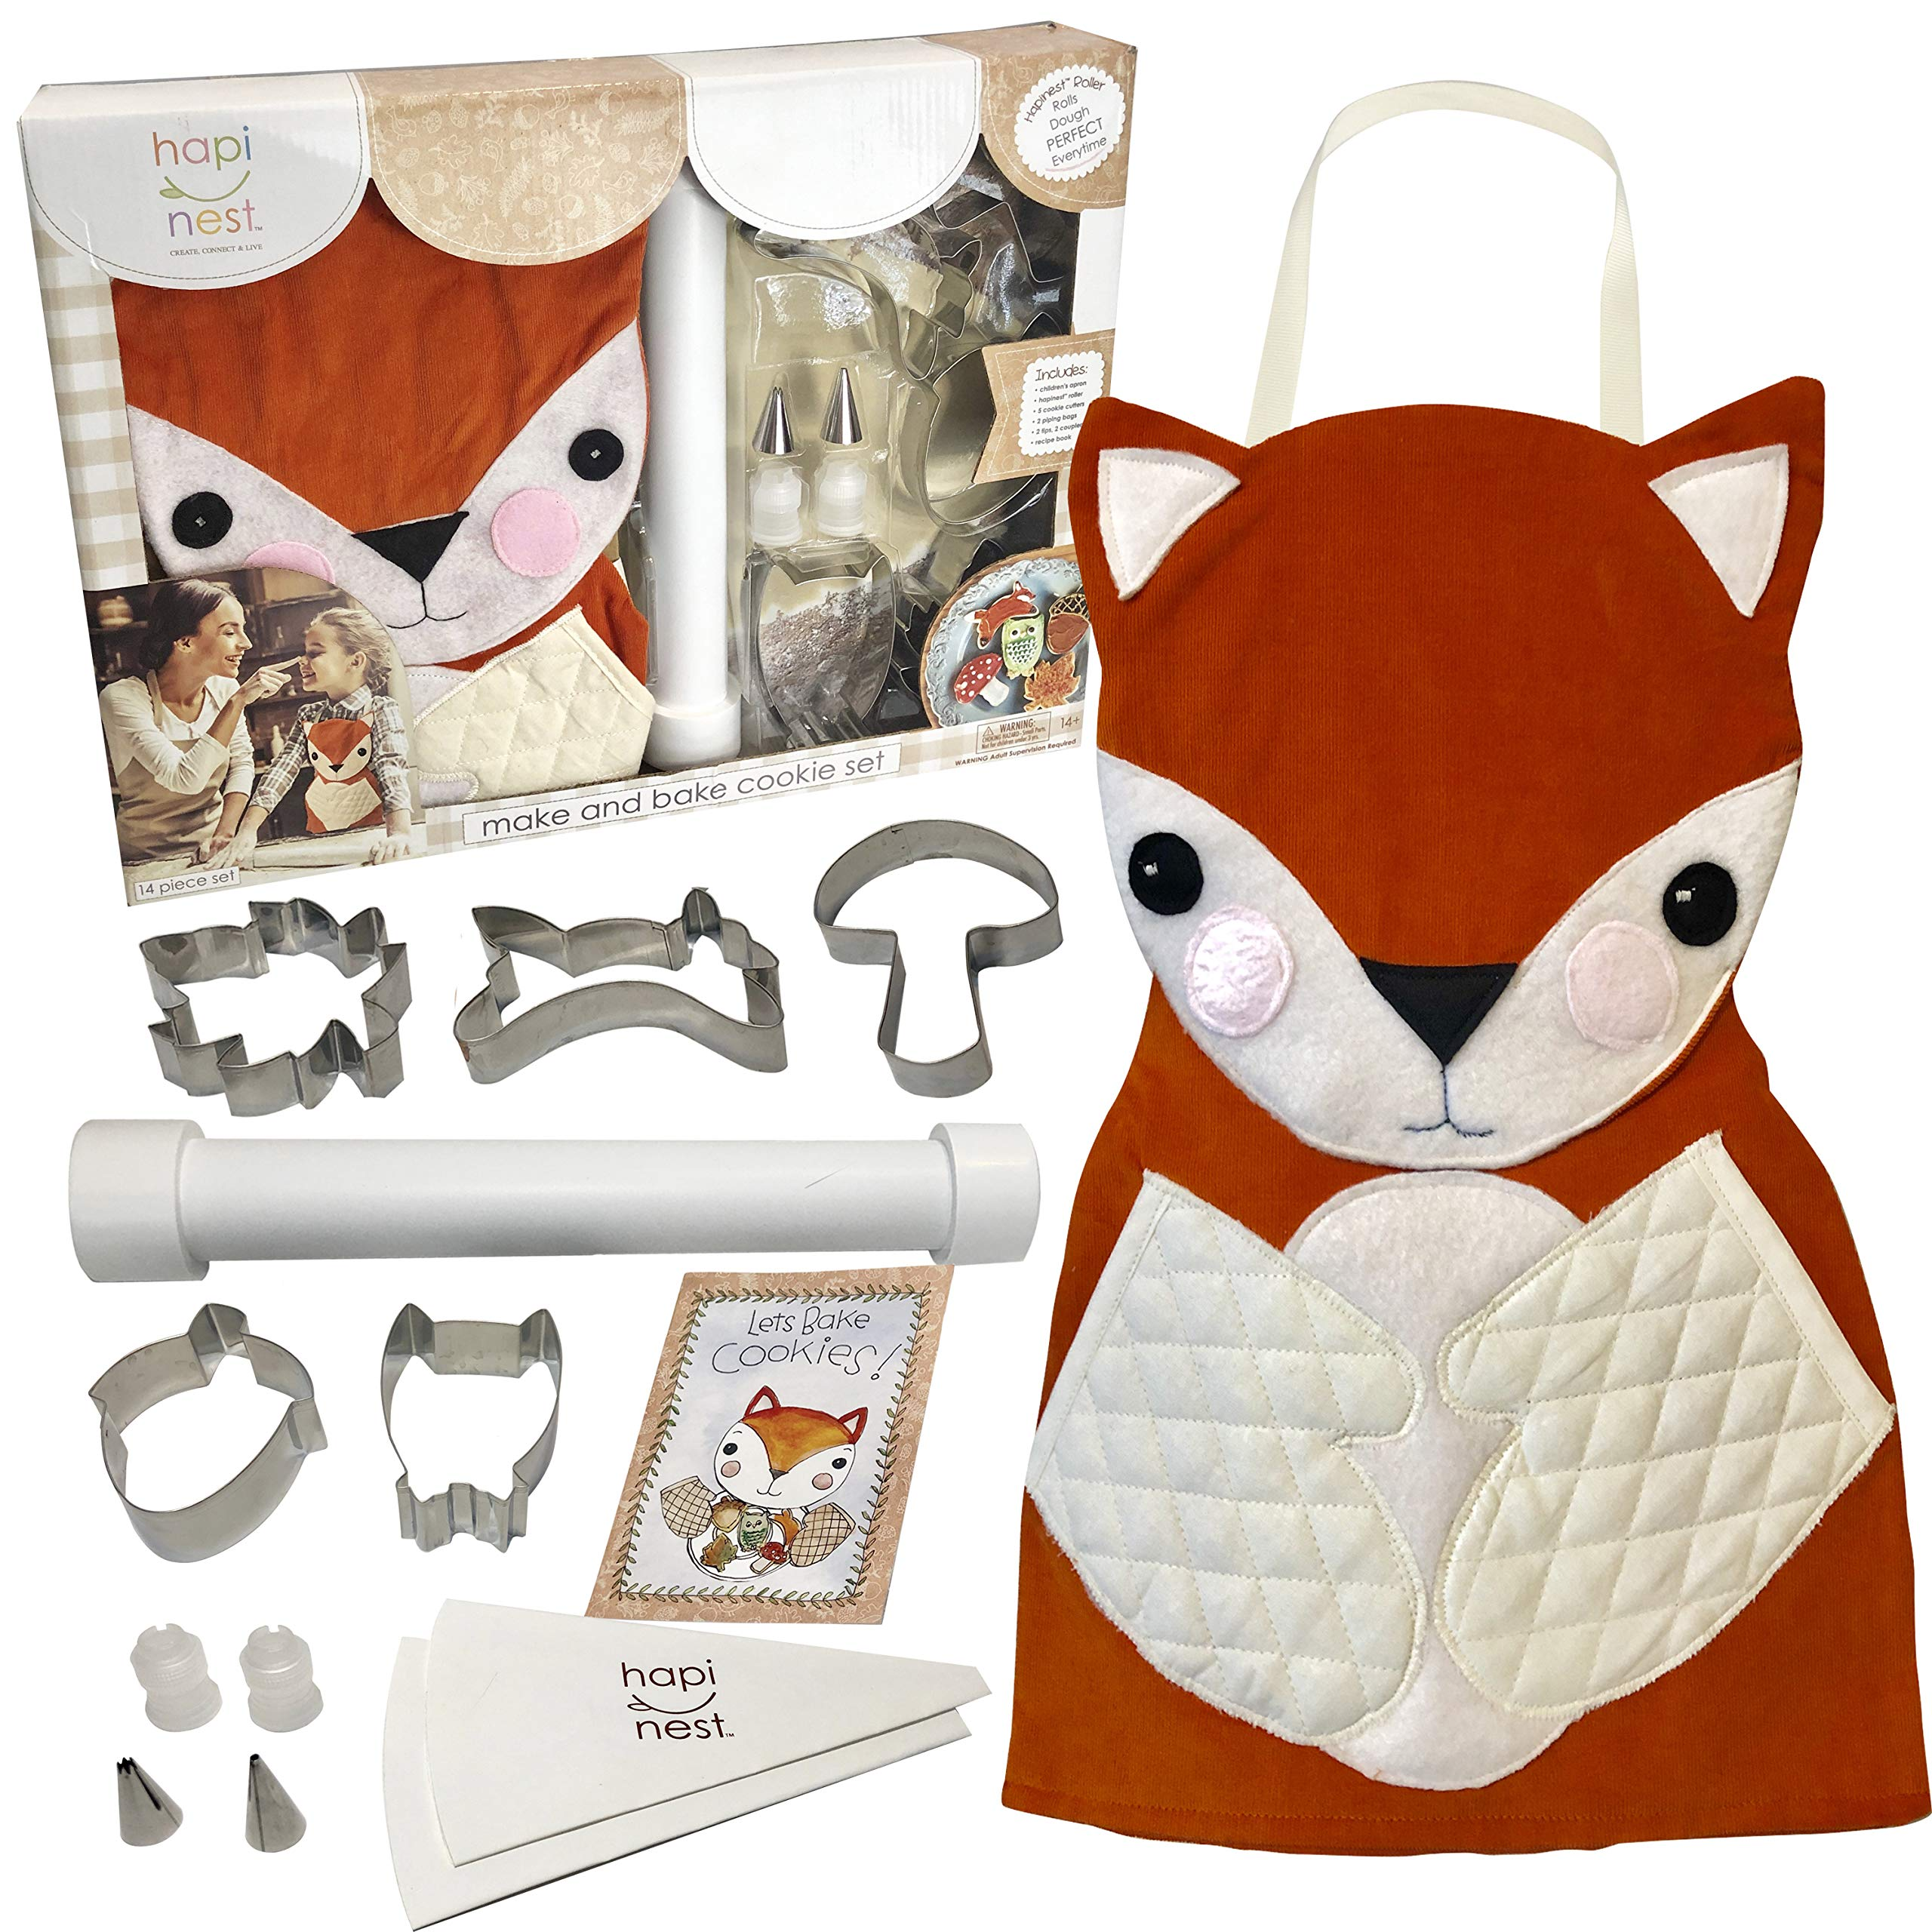 Hapinest Kids Baking Set for Girls Gifts Ages 4 5 6 7 8 year old Make and Bake Cookies Kit Fox Apron and Fall Cookie Cutters, 14 pieces by Hapinest